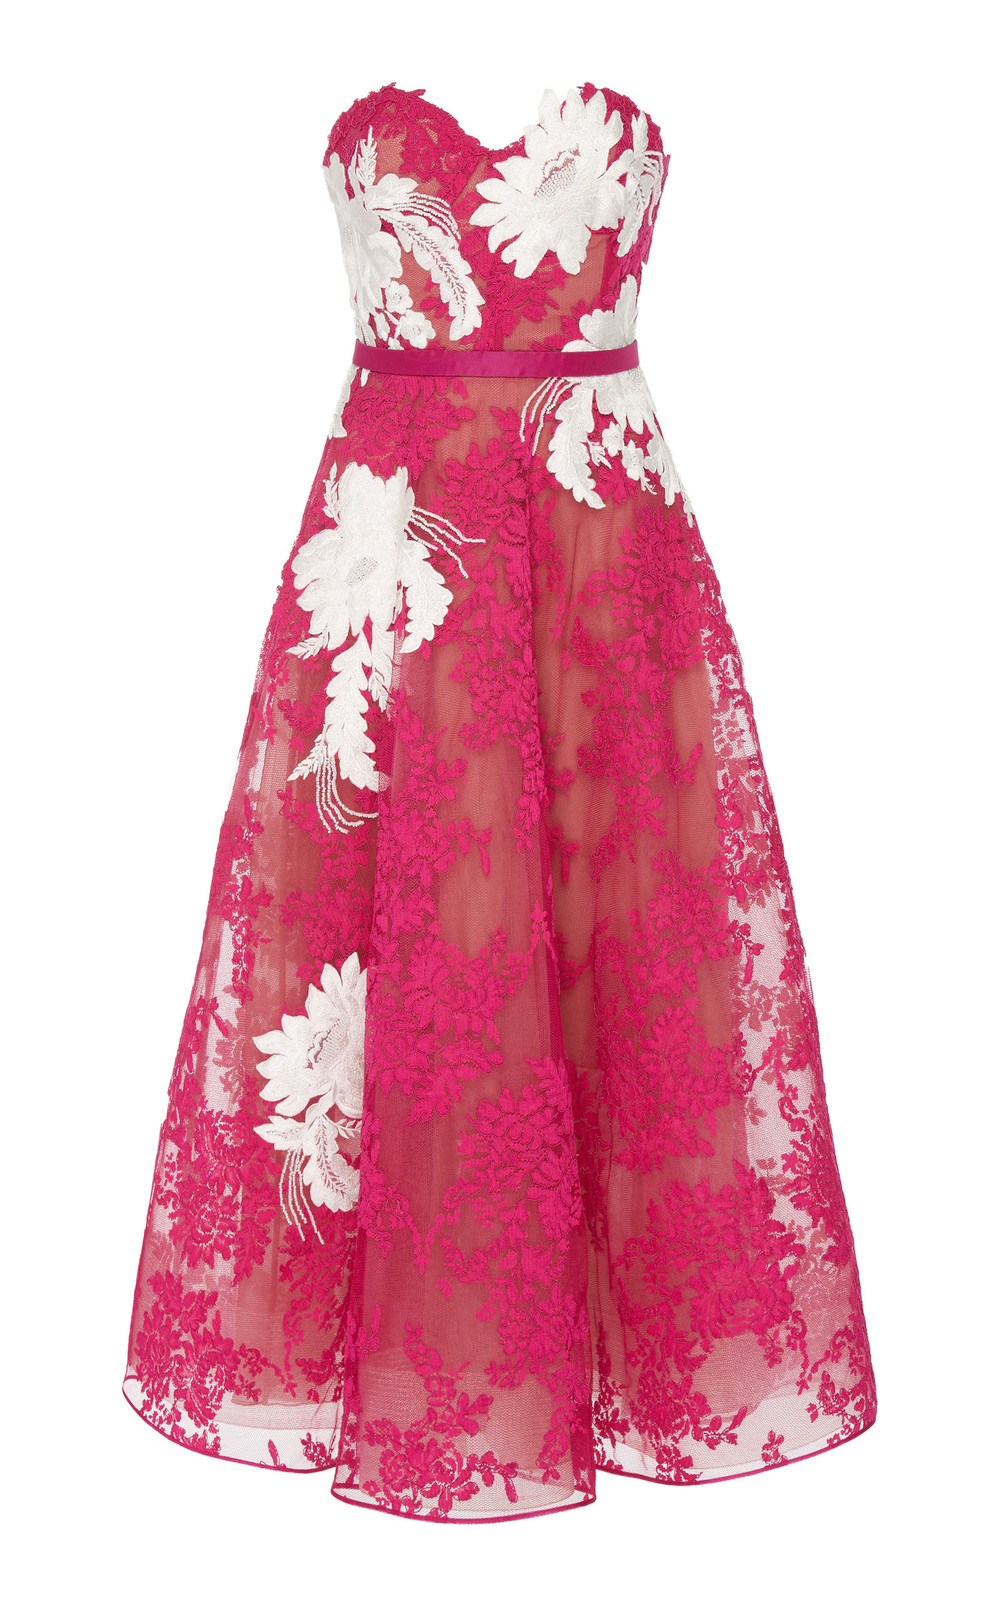 Marchesa Strapless Corded Lace Midi Dress in pink